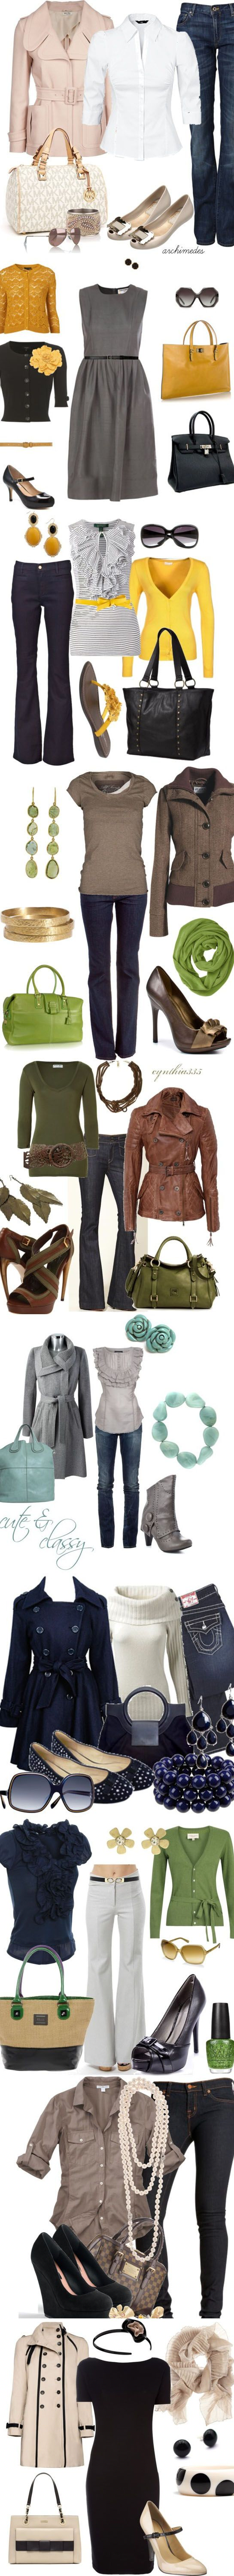 .: Fall Wardrobes, Fall Fashion Work Outfits, Excel Combinations, Chic Fall, Fall Outfits, Fall Looks, Winter Fashion, Fashion Trends, Classy Fall